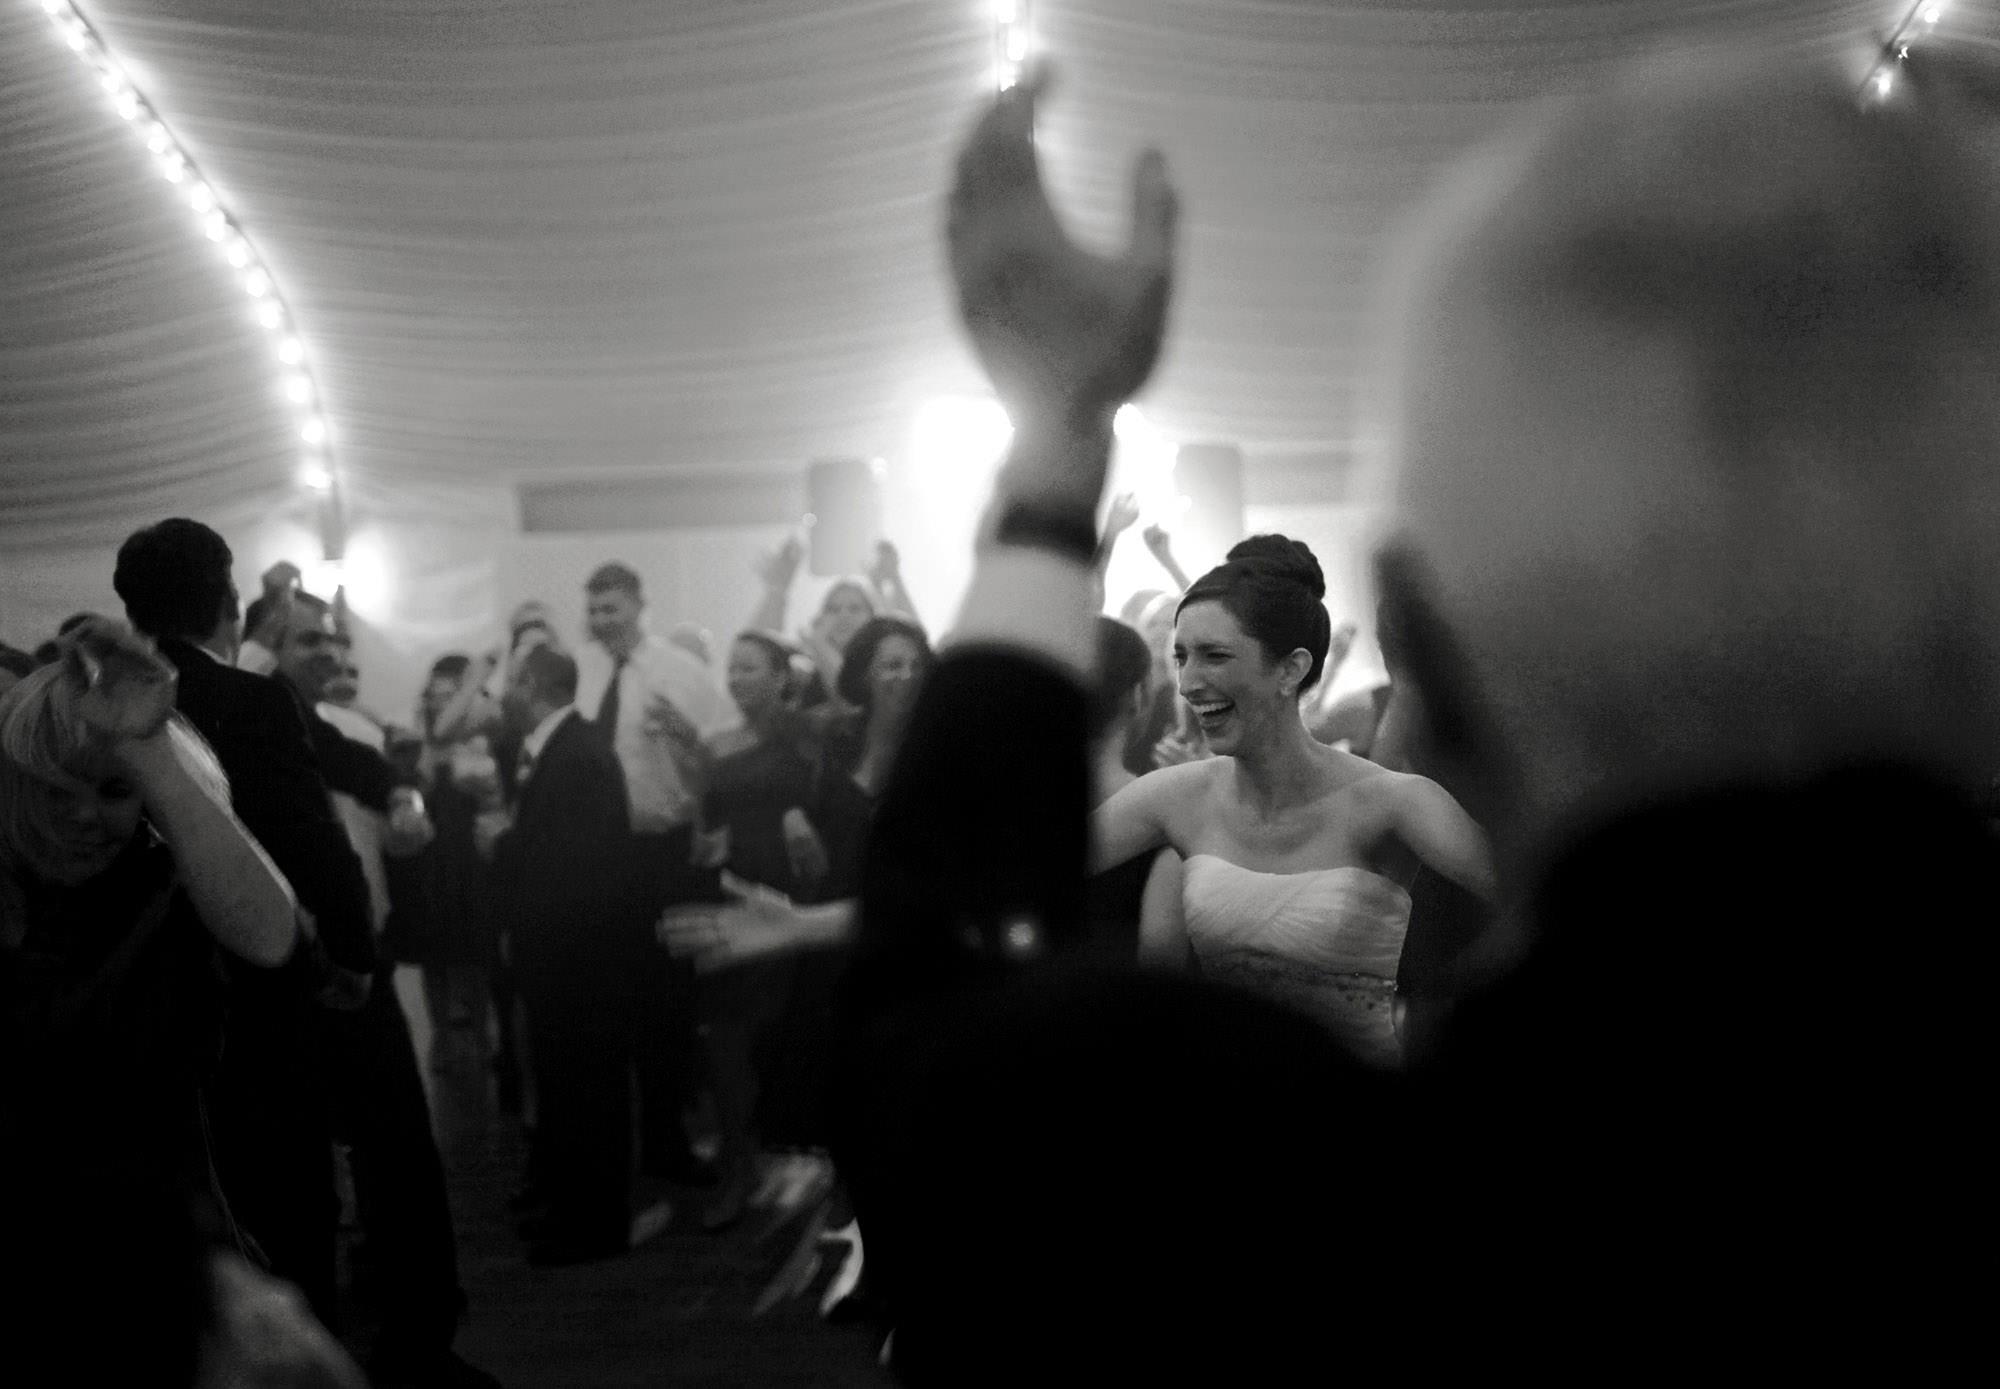 The bride dances with her guests during her wedding reception at Celebrations at the Bay.